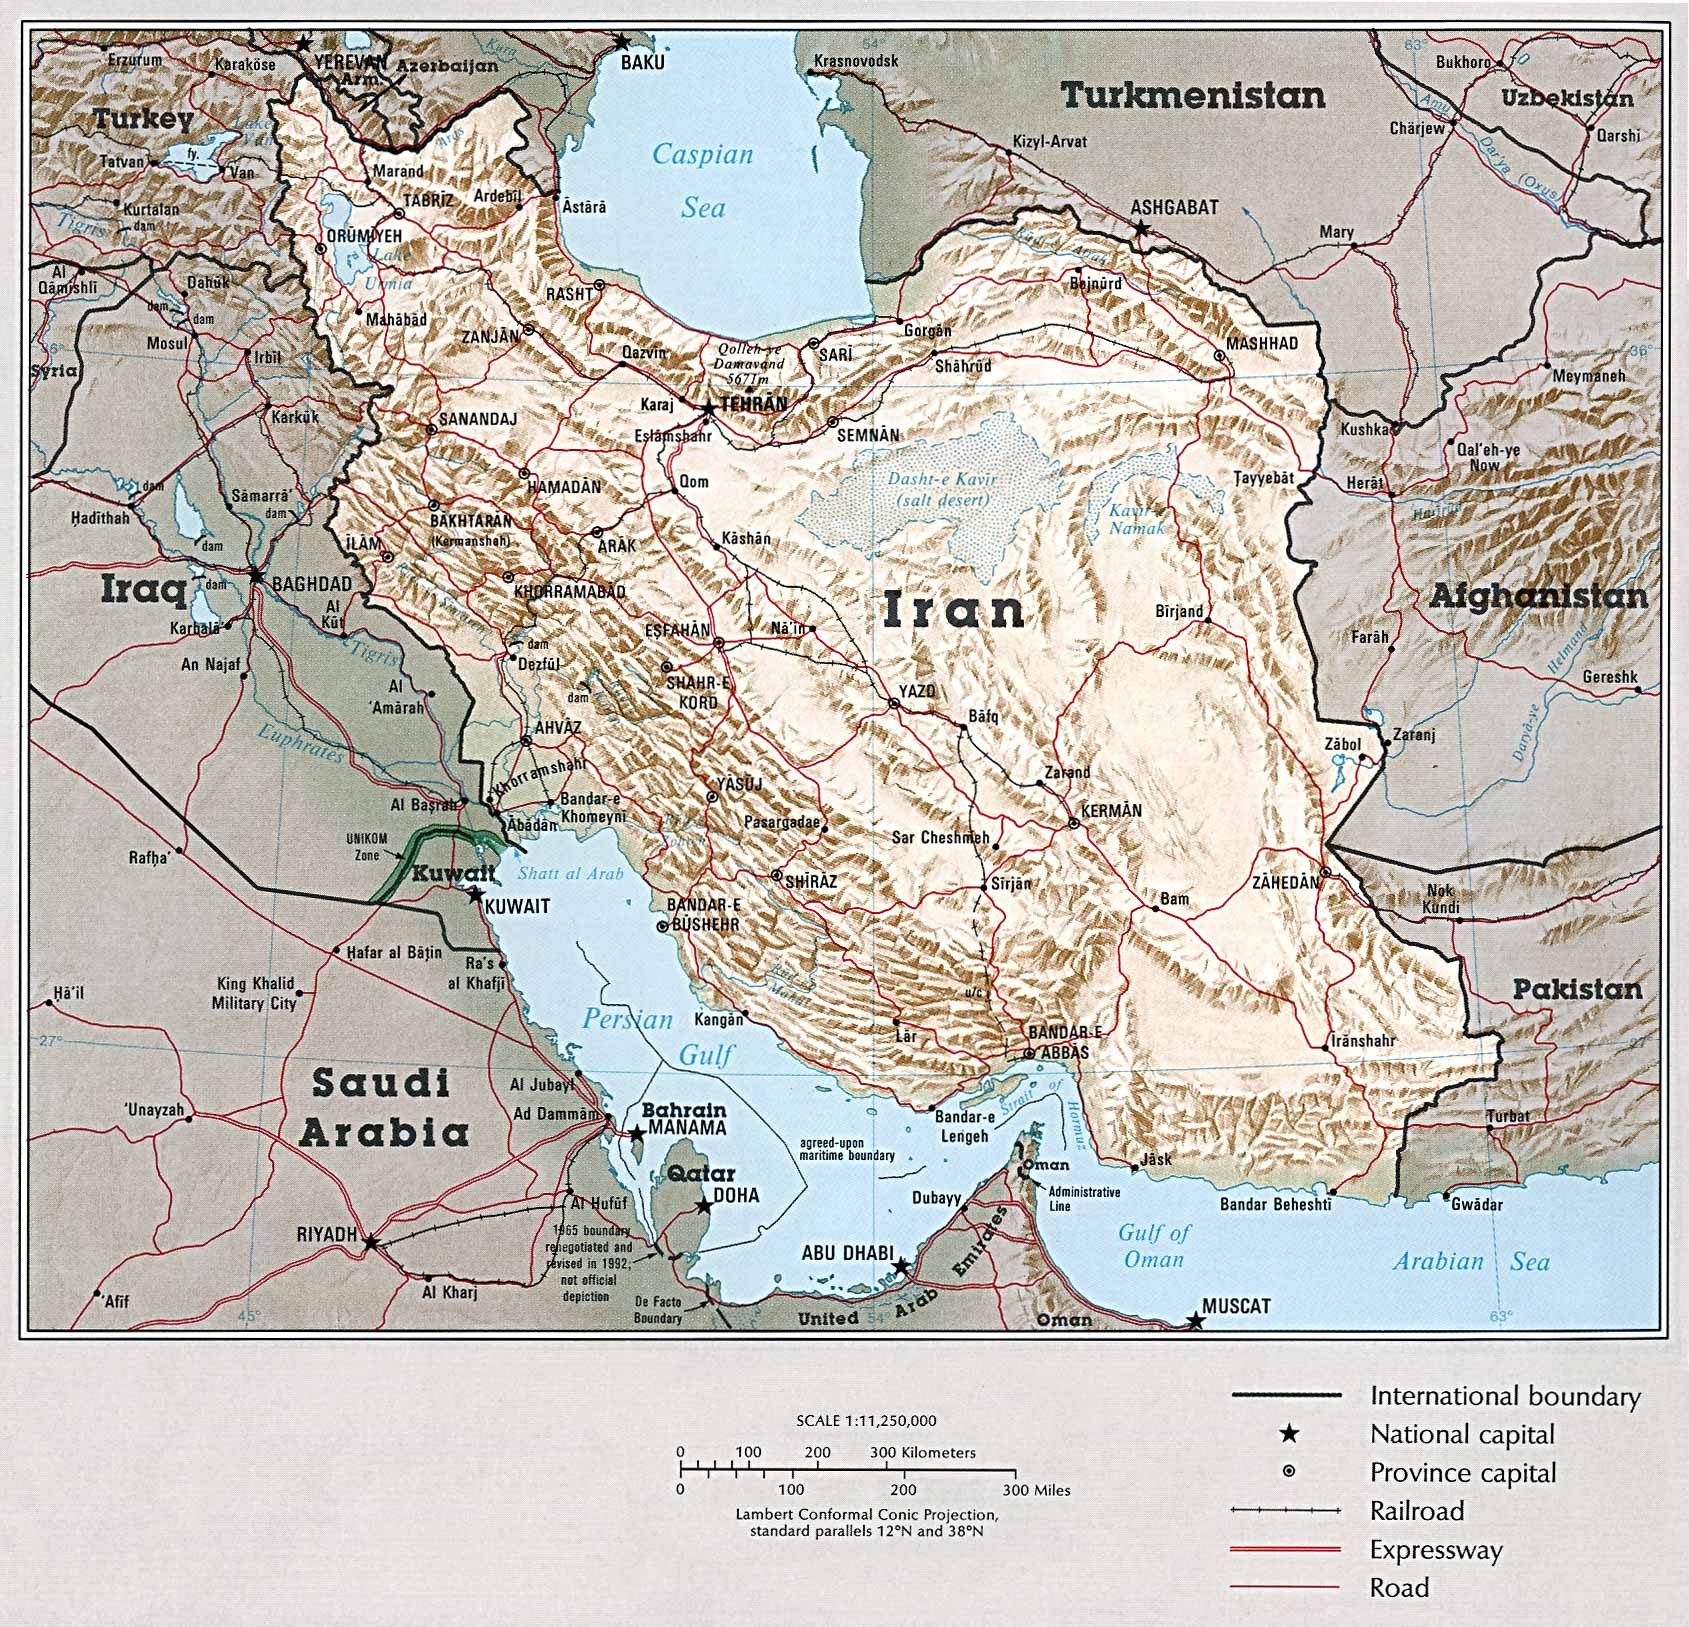 Atlas of the Middle East - Perry-Castañeda Map Collection